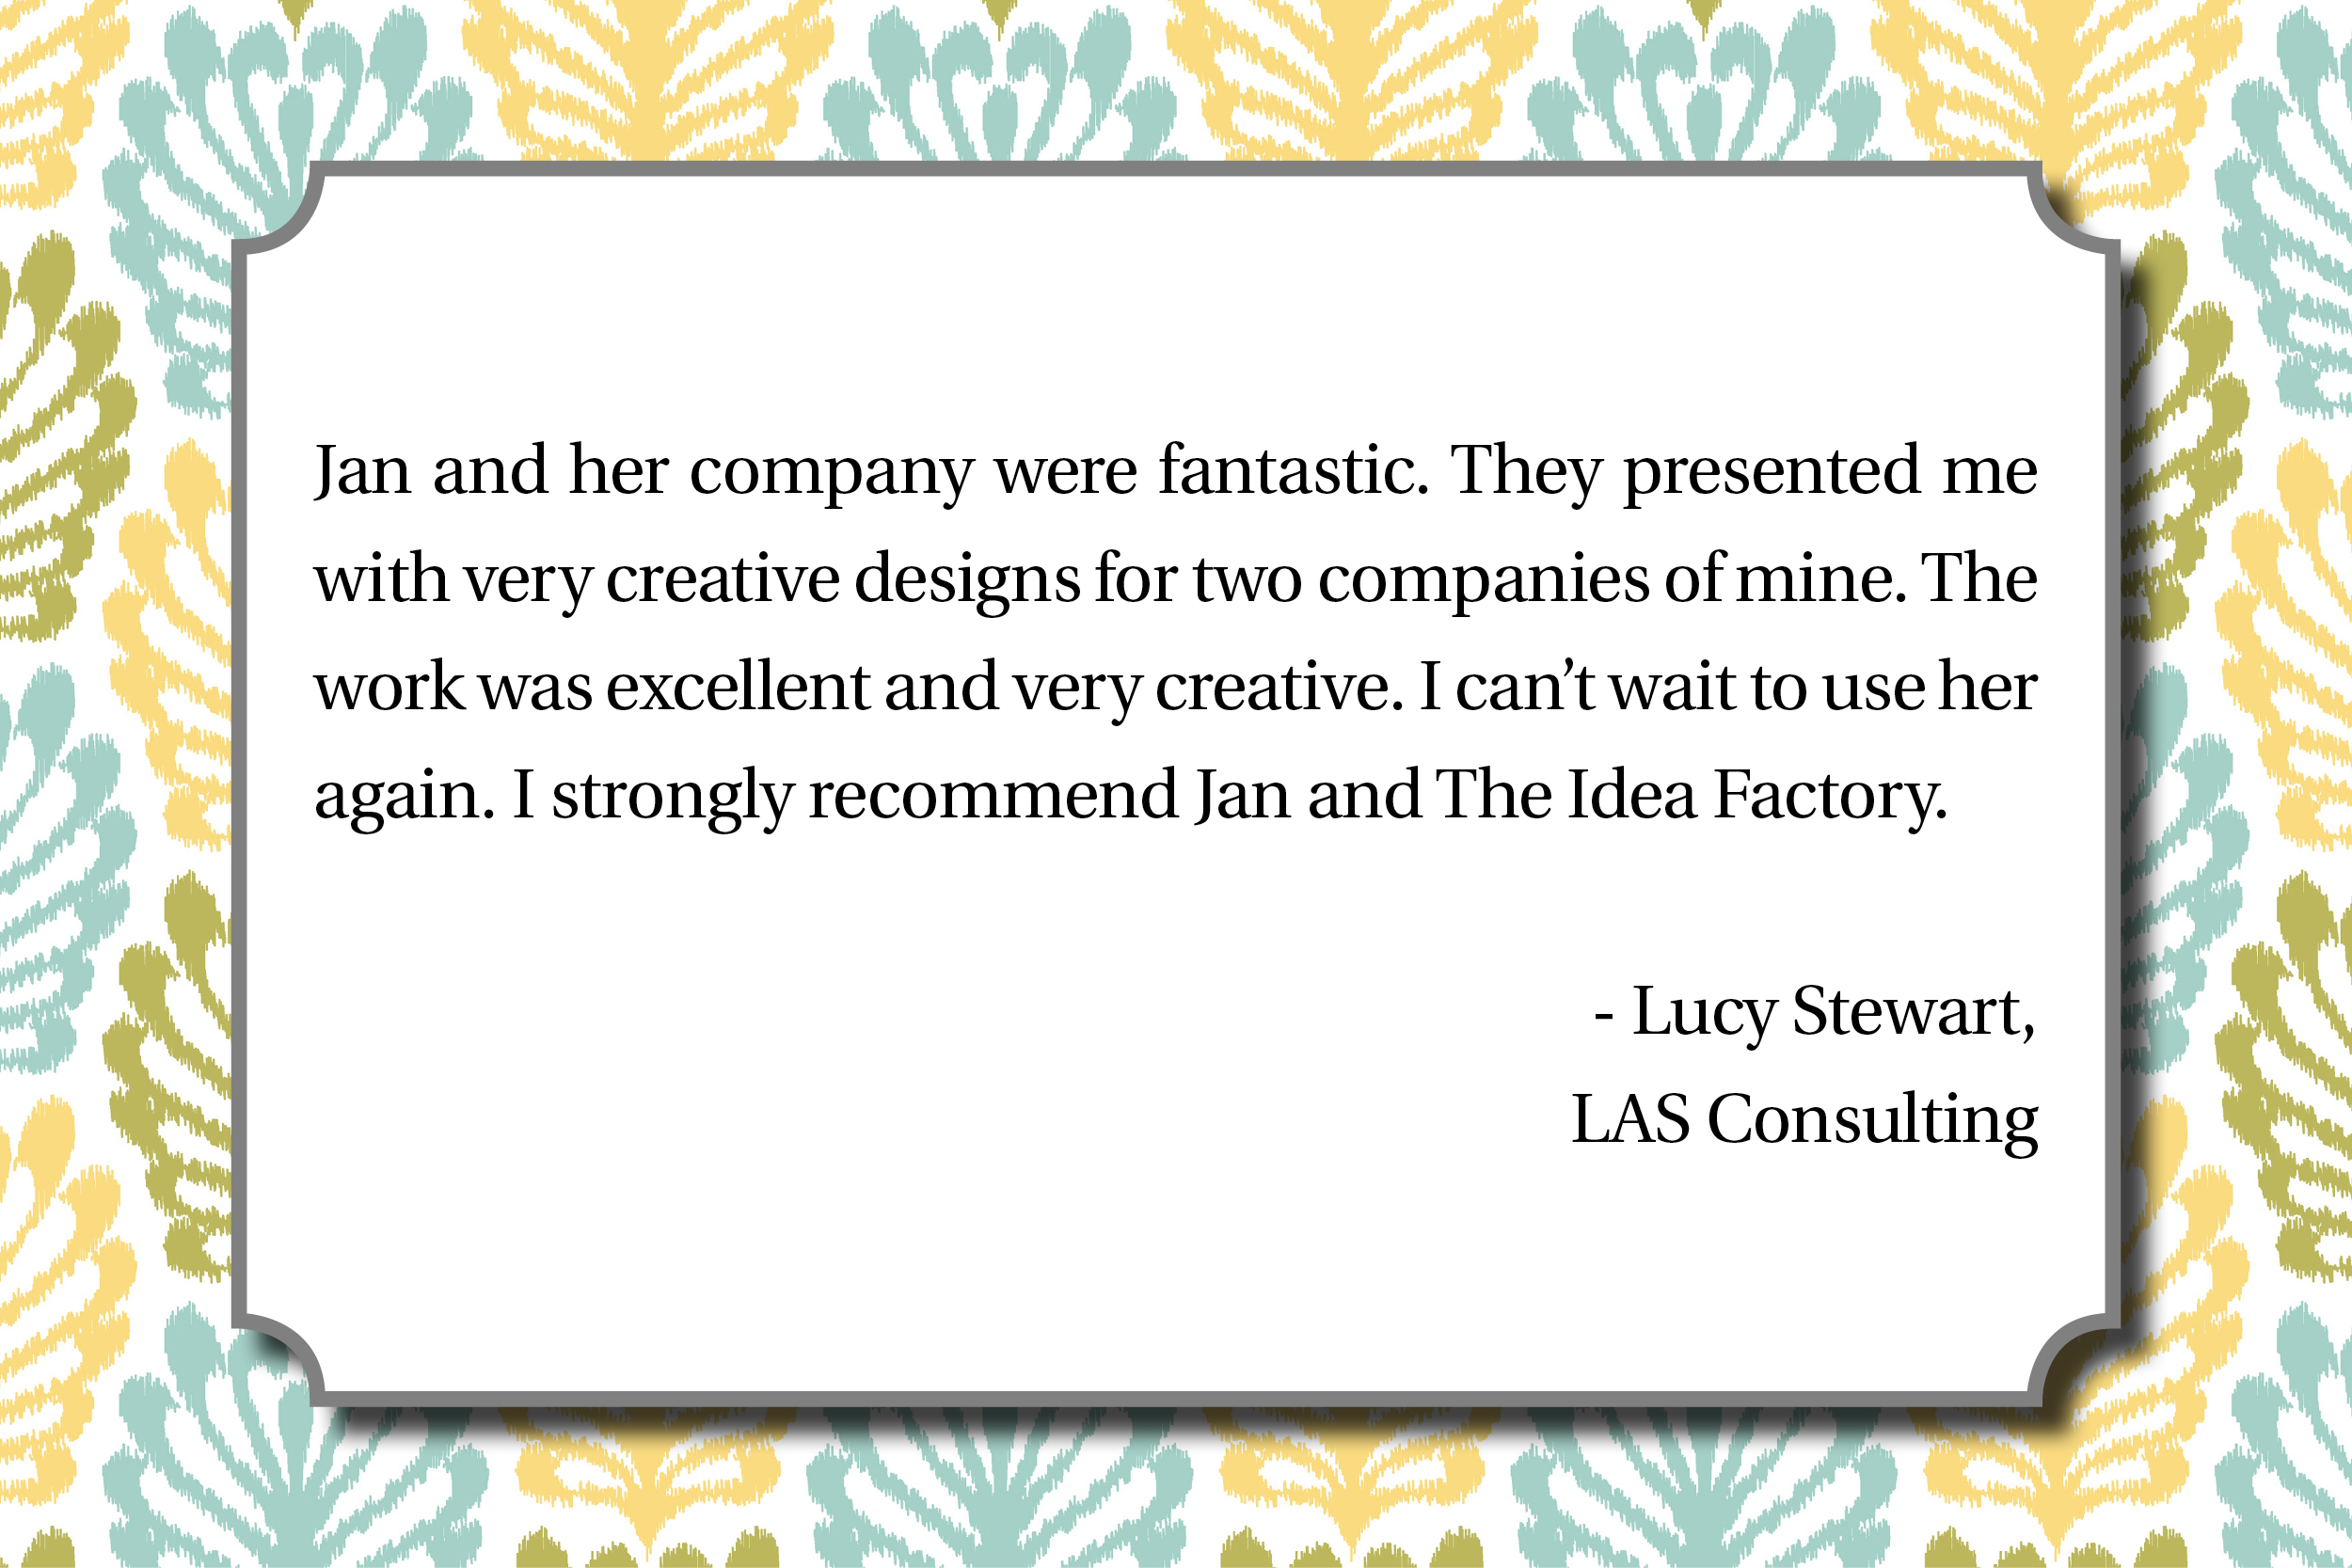 Jan and her company were fantastic, they presented me with very creative designs for two companies of mine, the work was excellent and very creative, I can't wait to use her again, I strongly recommend Jan and the Idea Factory, Lucy Stewart, LAS Consulting.